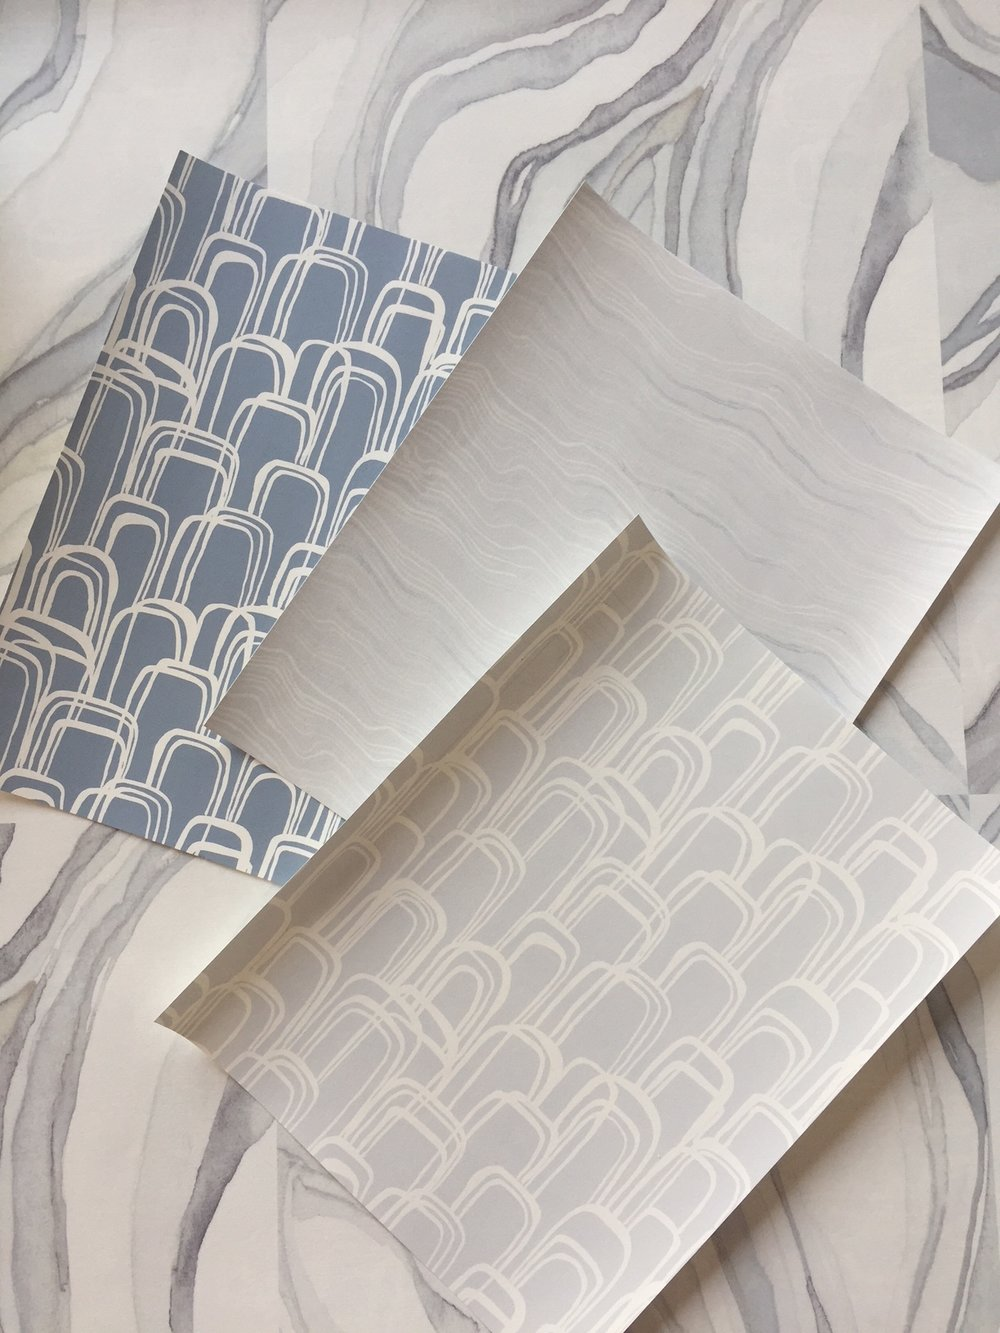 Shell Rummel Studio Collection Wallpaper samples... just the beginning!